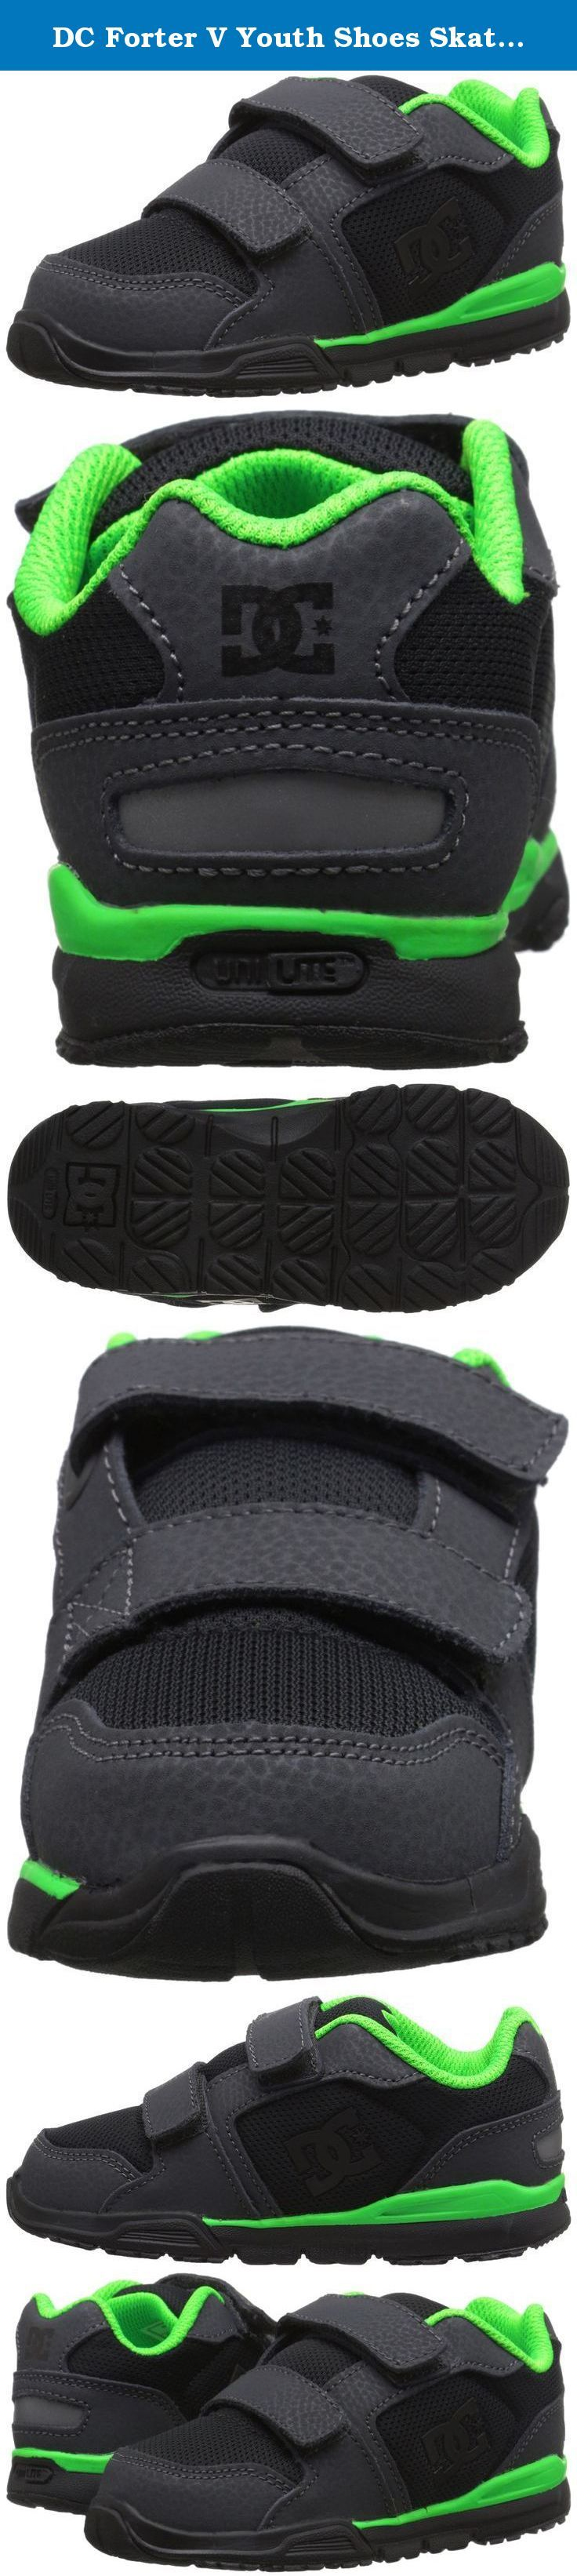 DC Forter V Youth Shoes Skate Shoe (Toddler), Dark Shadow/Black/Lime, 5 M US Toddler. DC Shoes is an American company that specializes in footwear for action sports, including skateboarding and snowboarding. Founded by Ken Block and Damon Way in 1993, DC quickly grew to a leader in performance skateboarding shoes and renowned action sports brand. Today DC stands as a global brand whose product line has expanded to include men's, kid's and kids' skateboarding and lifestyle shoes, apparel...